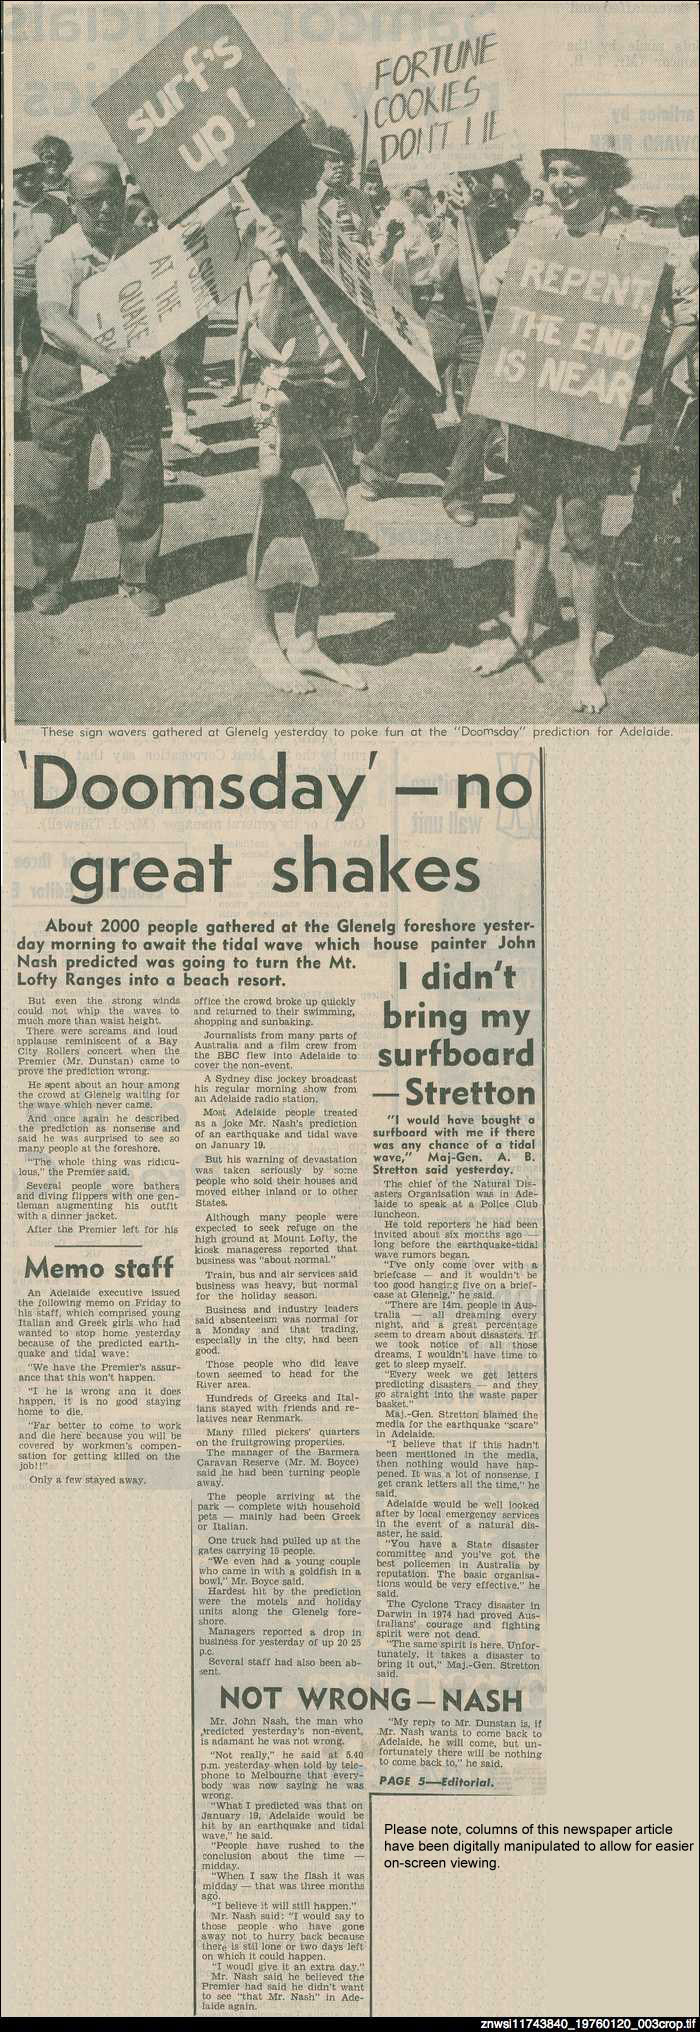 'Doomsday' in Adelaide no great shakes